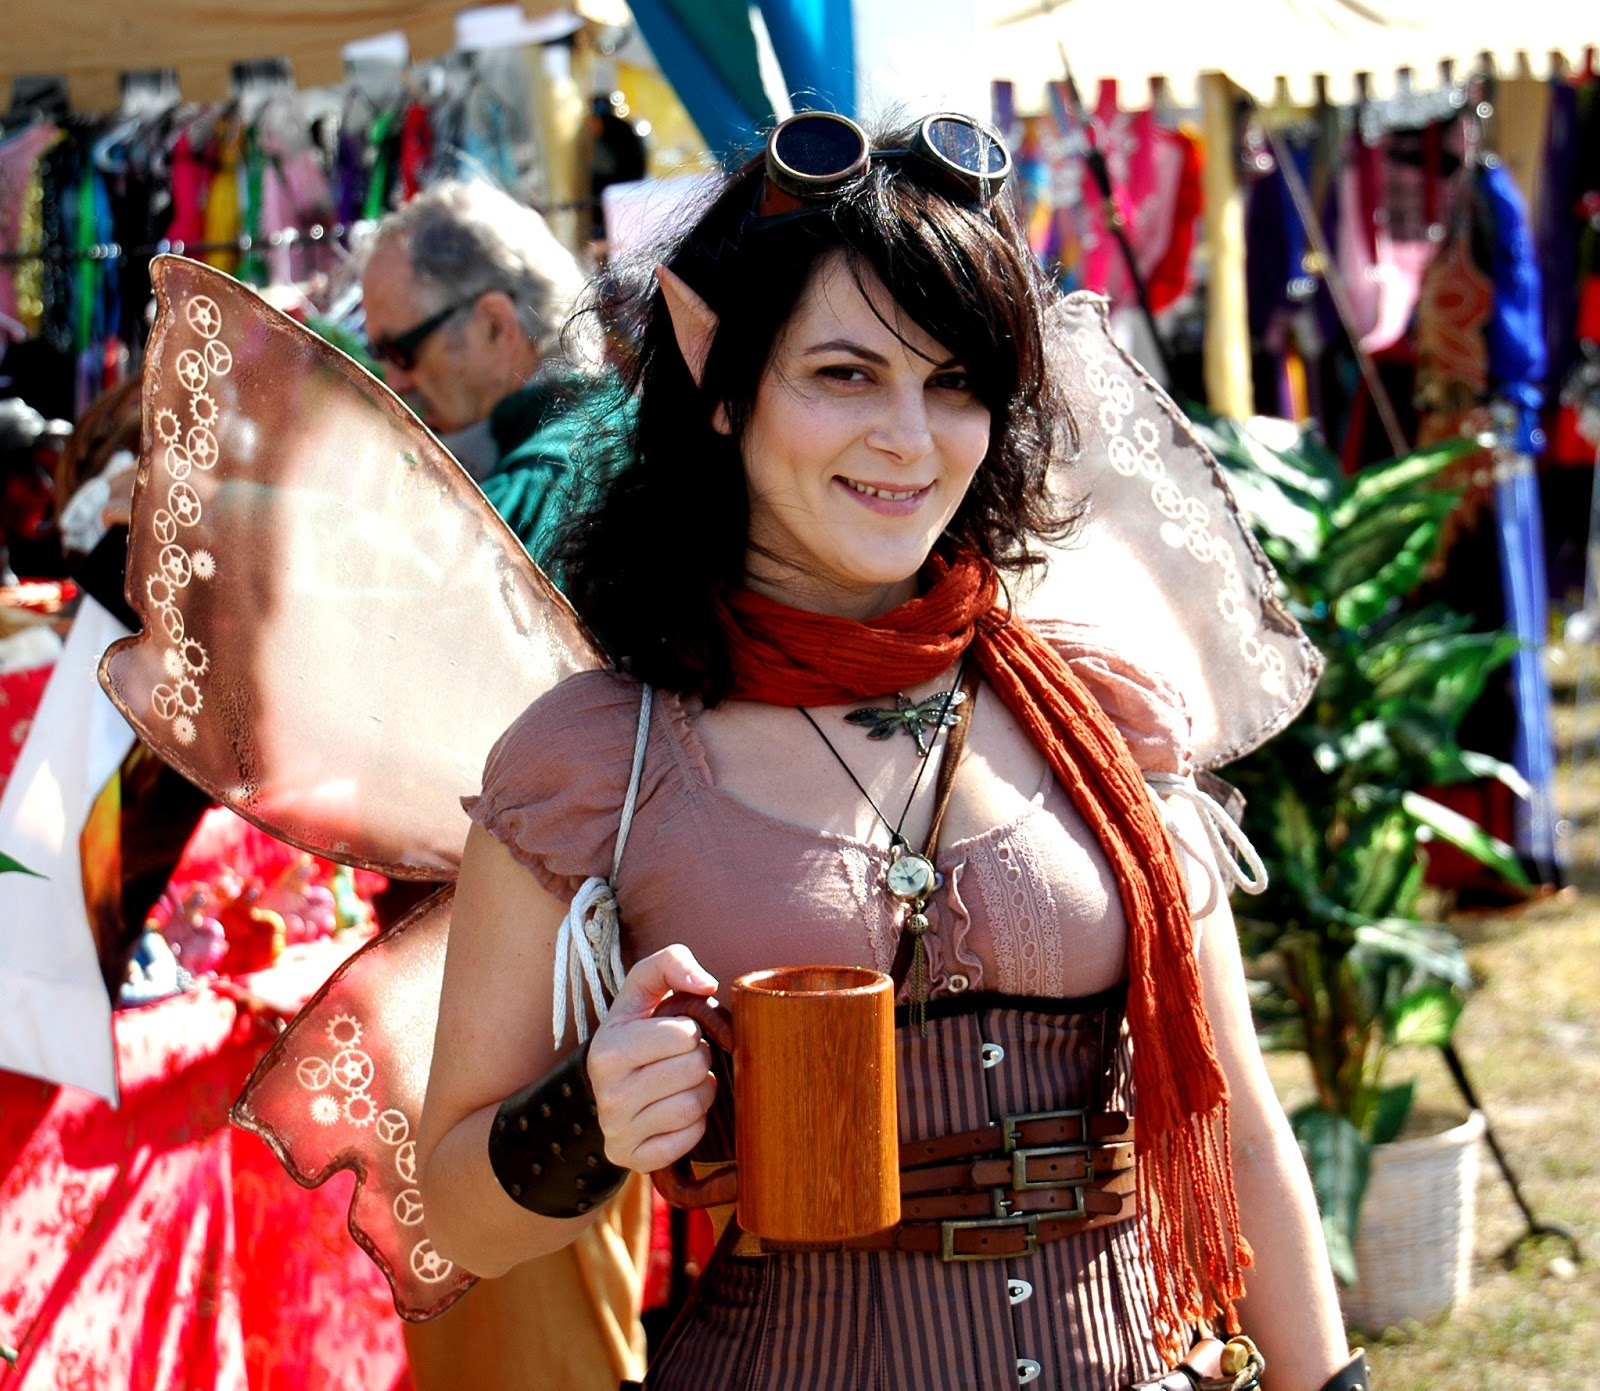 Florida Faires & Festivals. Renaissance; Pirates; Fairies; Dickens; Celtic Games. Florida Faires & Festivals. Submit a missing event. Index · Find a Faire This Weekend · By State · .